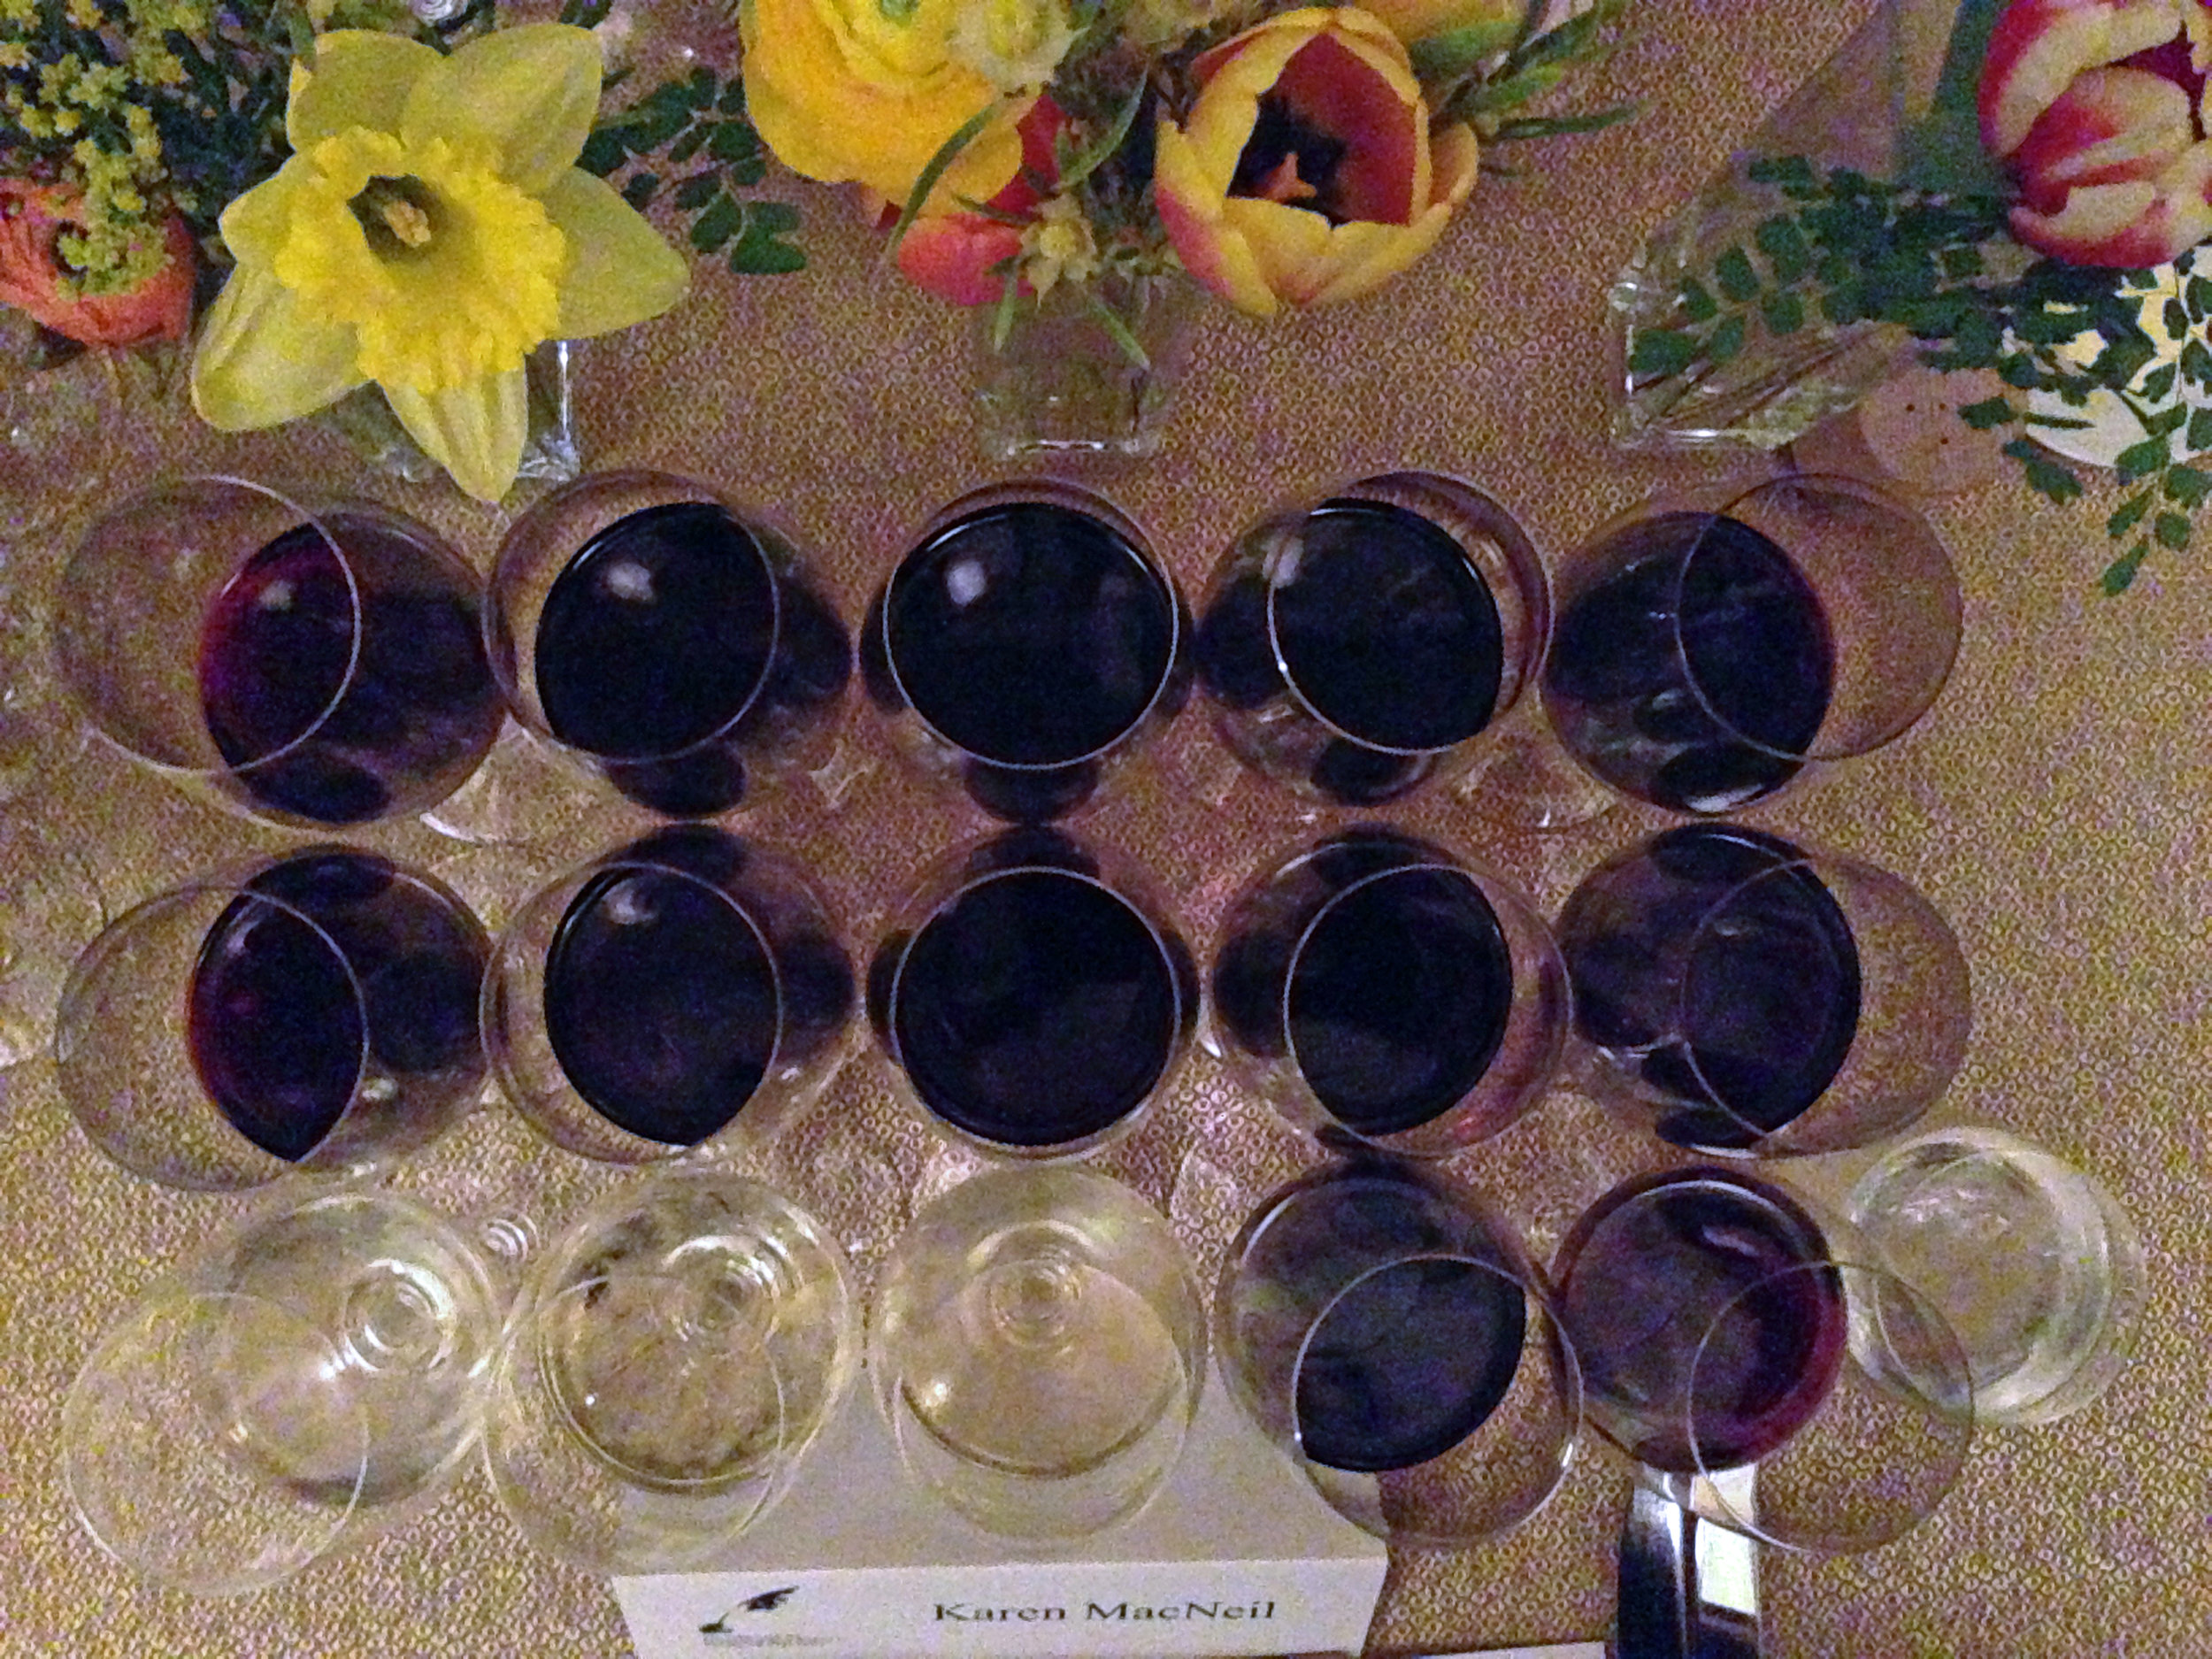 Wines from the fellowship sponsors during our farewell dinner